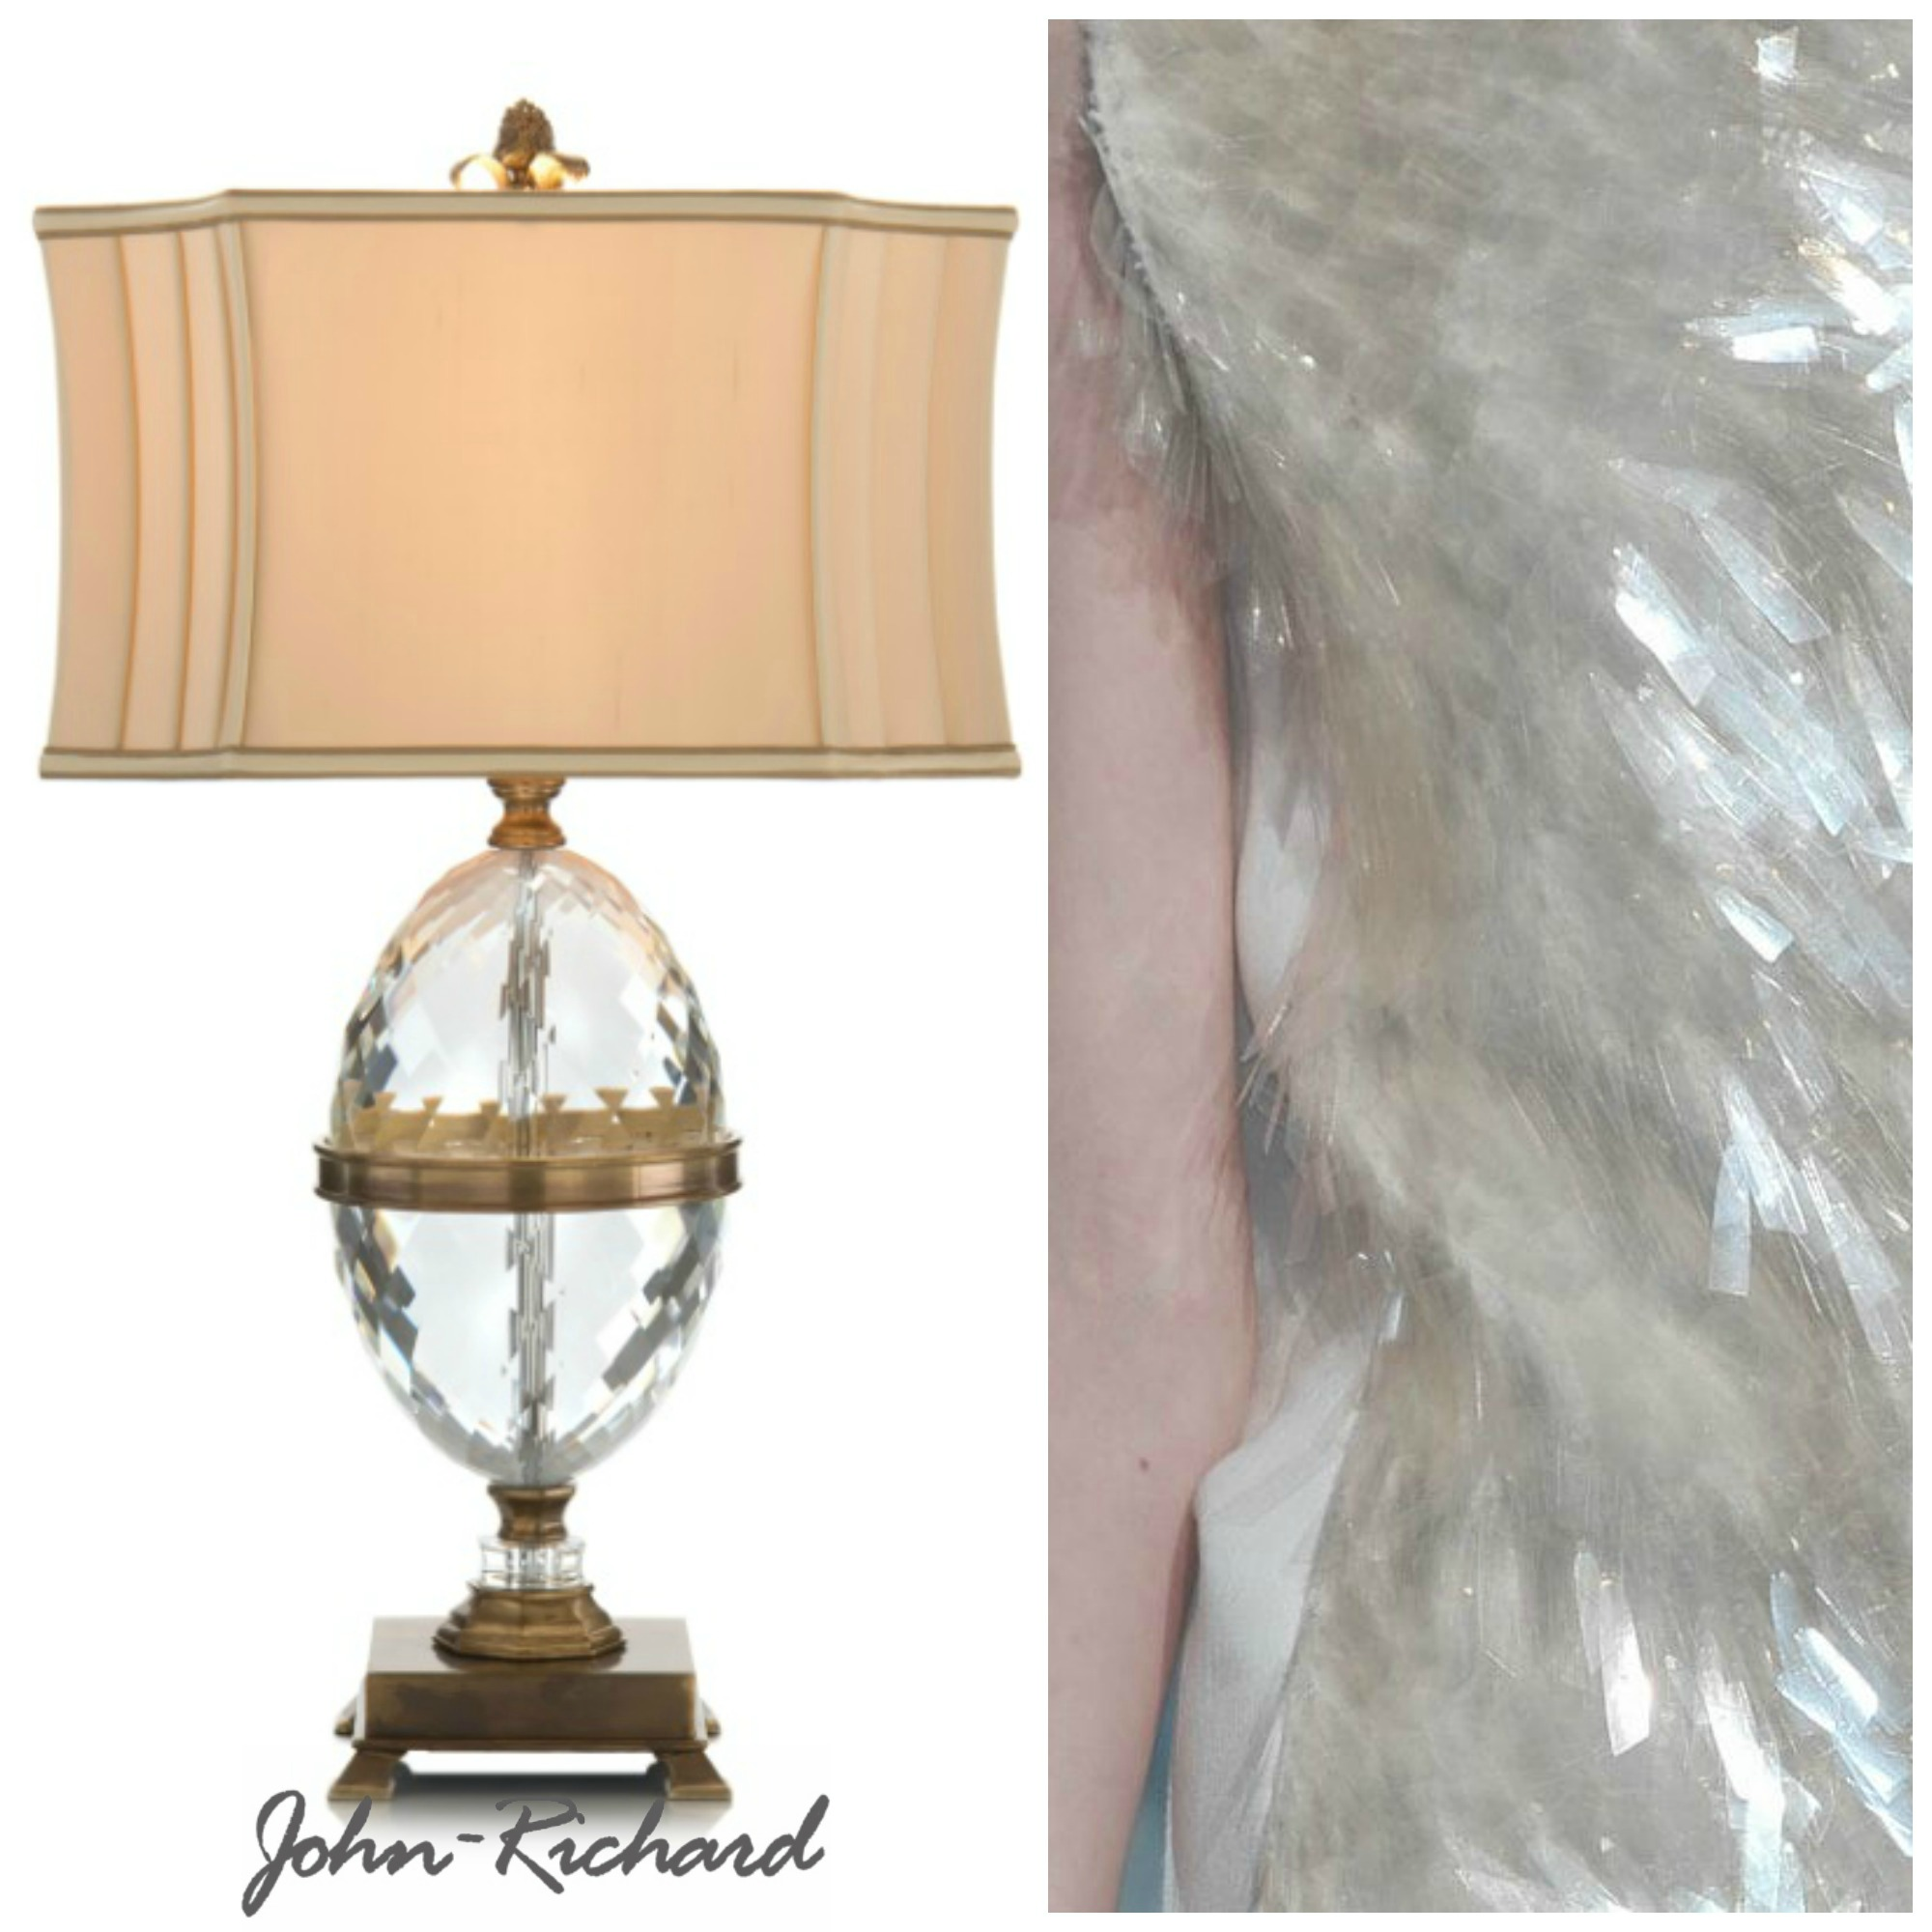 Lux lighting fashion the john richard collection john richard collection table lamp geotapseo Image collections